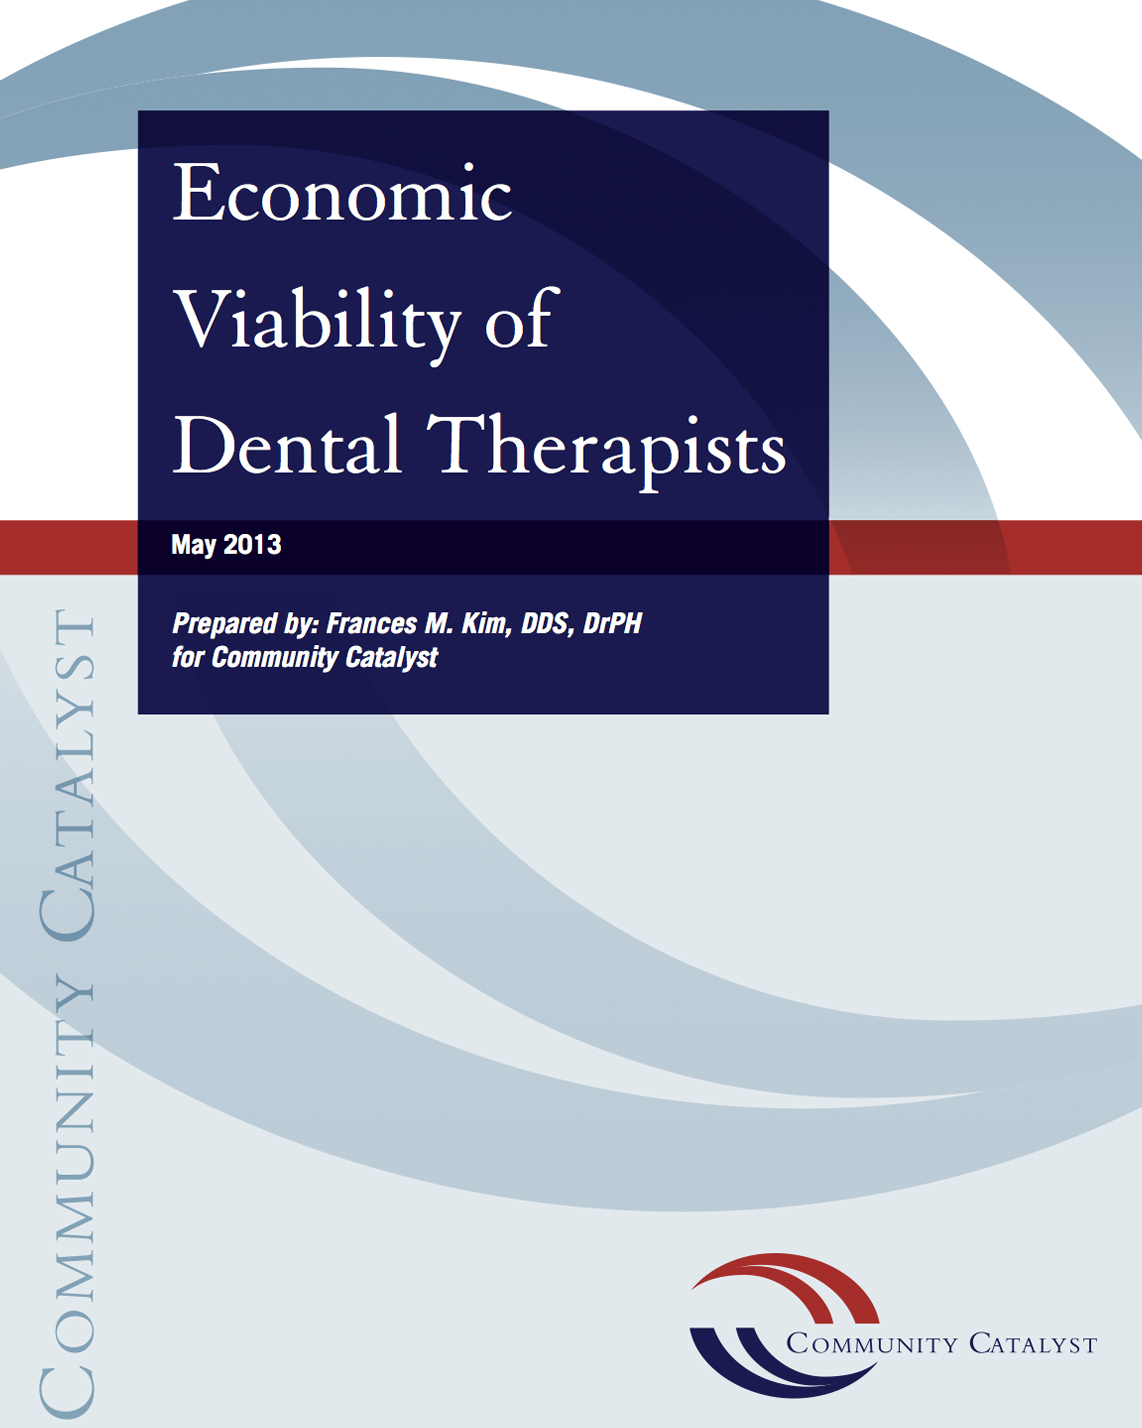 Economic Viability of Dental Therapists - W.K. Kellogg Foundation